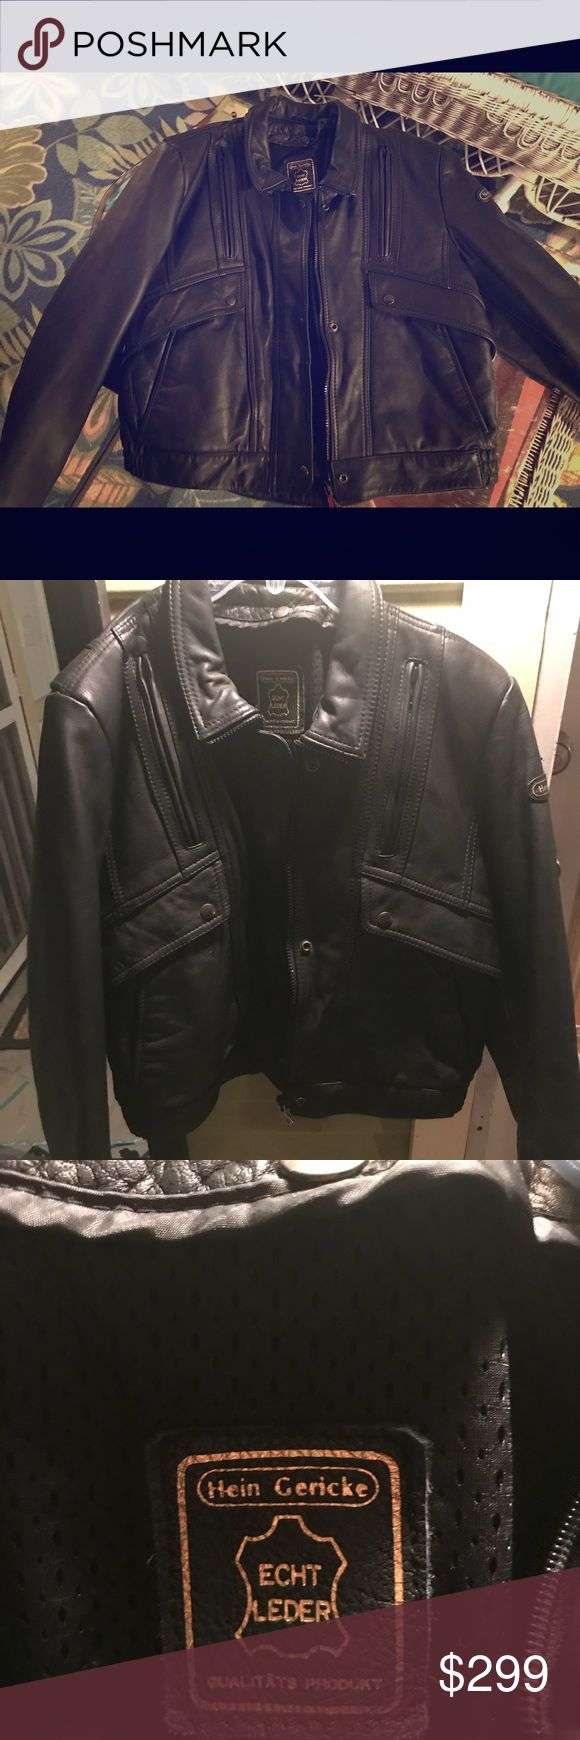 Hein Gericke black leather motorcycle jacket - new Worn only once, this beautiful Hein Gericke black leather motorcycle jacket is a must have statement piece for the fashionable female bikers closet. Don't ride a bike? Wear it anyway, on any occasion and make a statement!! incredibly well made, warm, insulated, with multiple zippered and snap pockets. Worn only once. In like new condition. Size 38, female. hein gericke Jackets & Coats